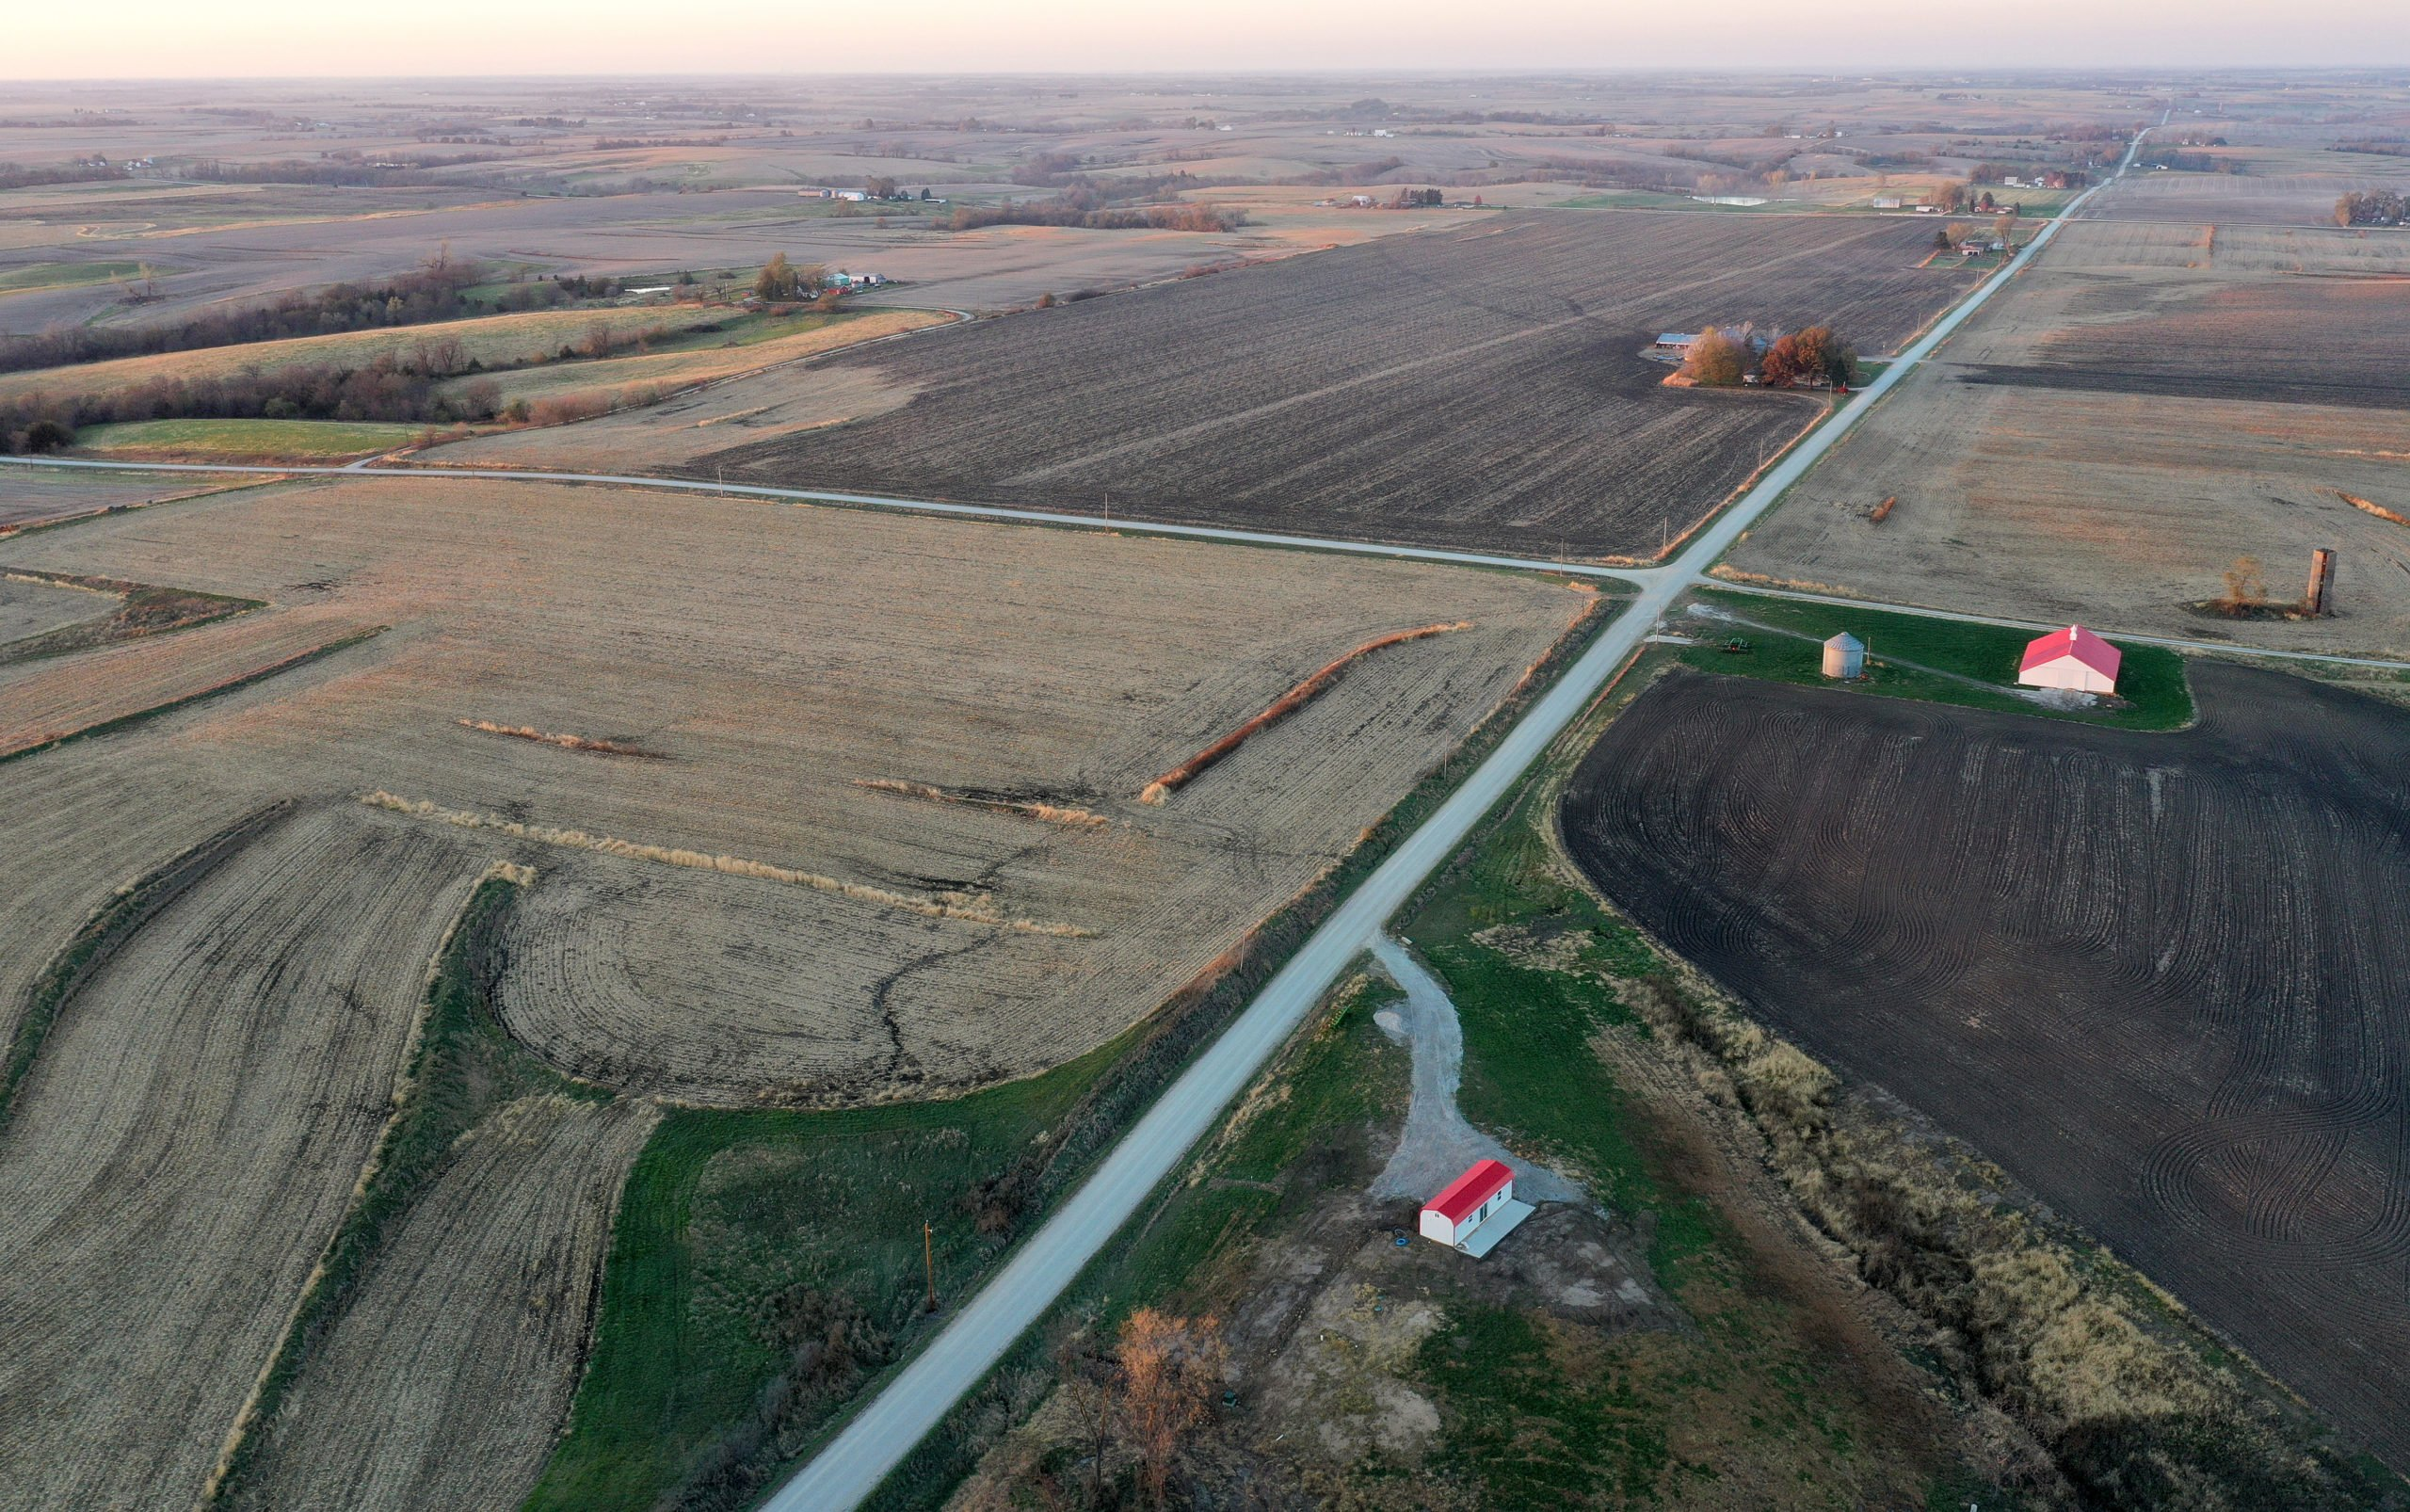 LACONA, IOWA - OCTOBER 30: An aerial view of mostly harvested farmland at sunset in the final days of the 2020 presidential election on October 30, 2020 in Lacona, Iowa. Agriculture remains a vital part of the battleground state's economy. Democratic presidential nominee Joe Biden made a campaign stop in Des Moines today with President Donald Trump scheduled to hold a rally in Dubuque on November 1. (Photo by Mario Tama/Getty Images)